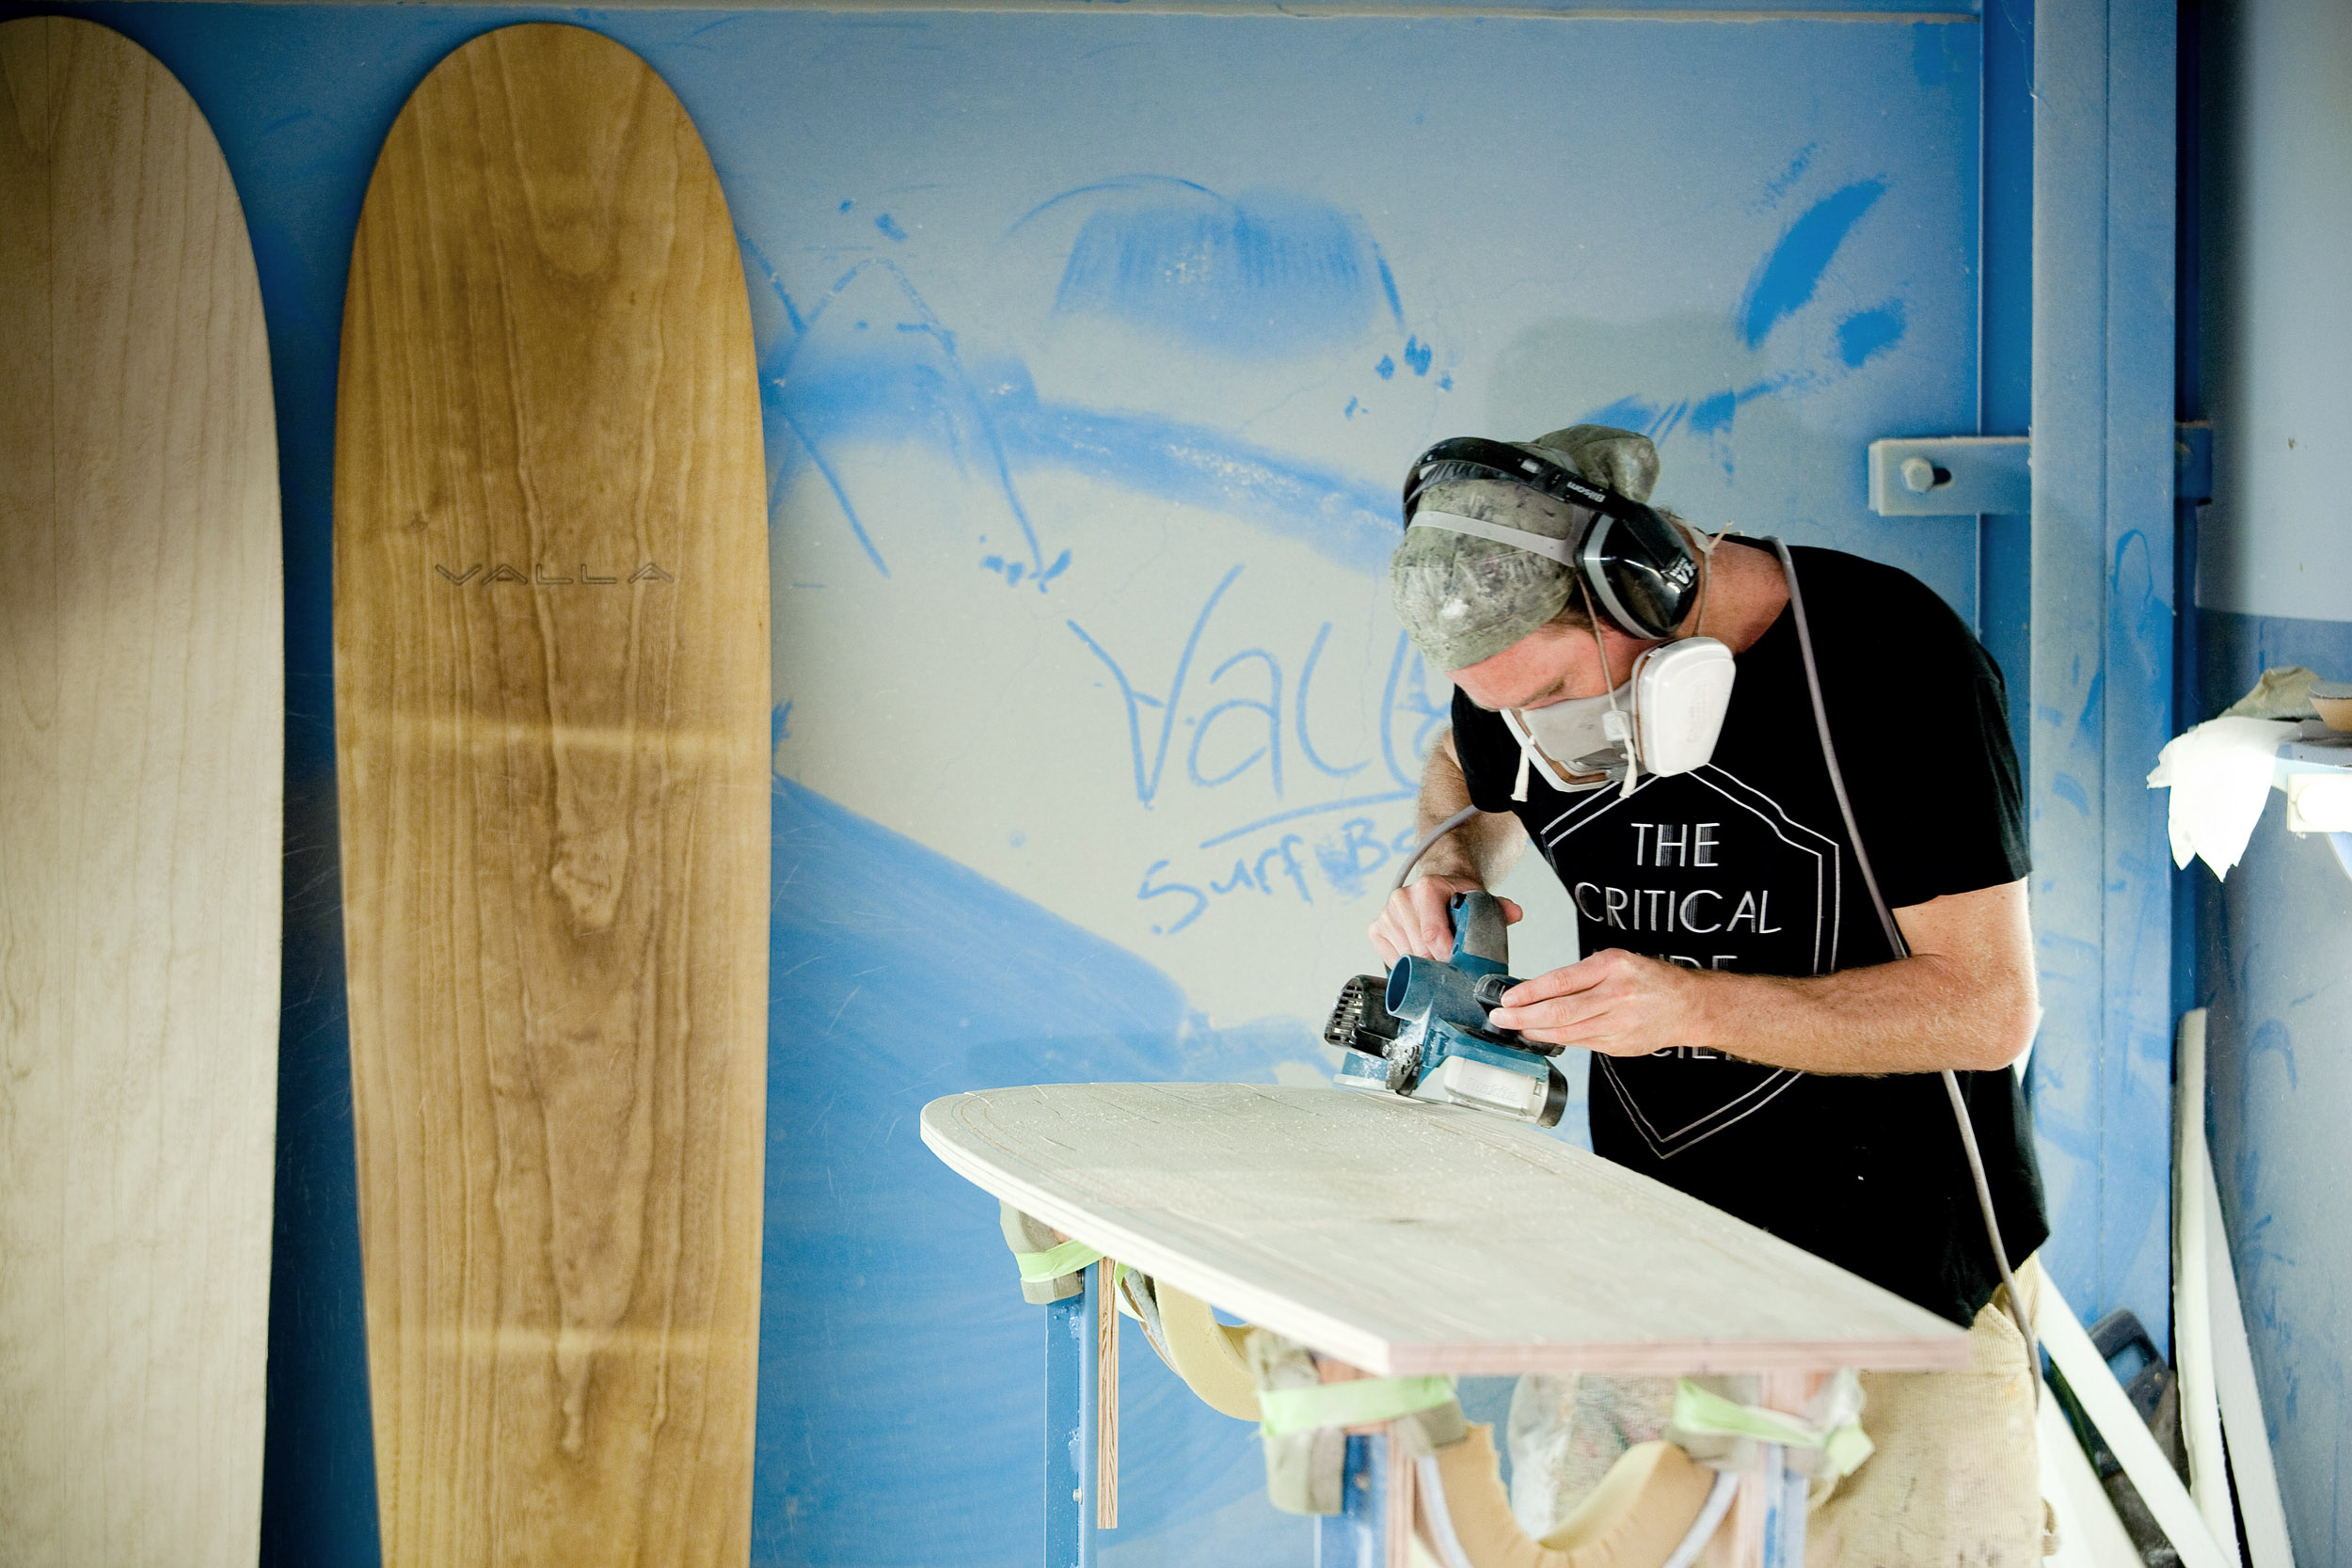 shapers-bay-alaia-surfboard-shaper-surf-photography.jpg